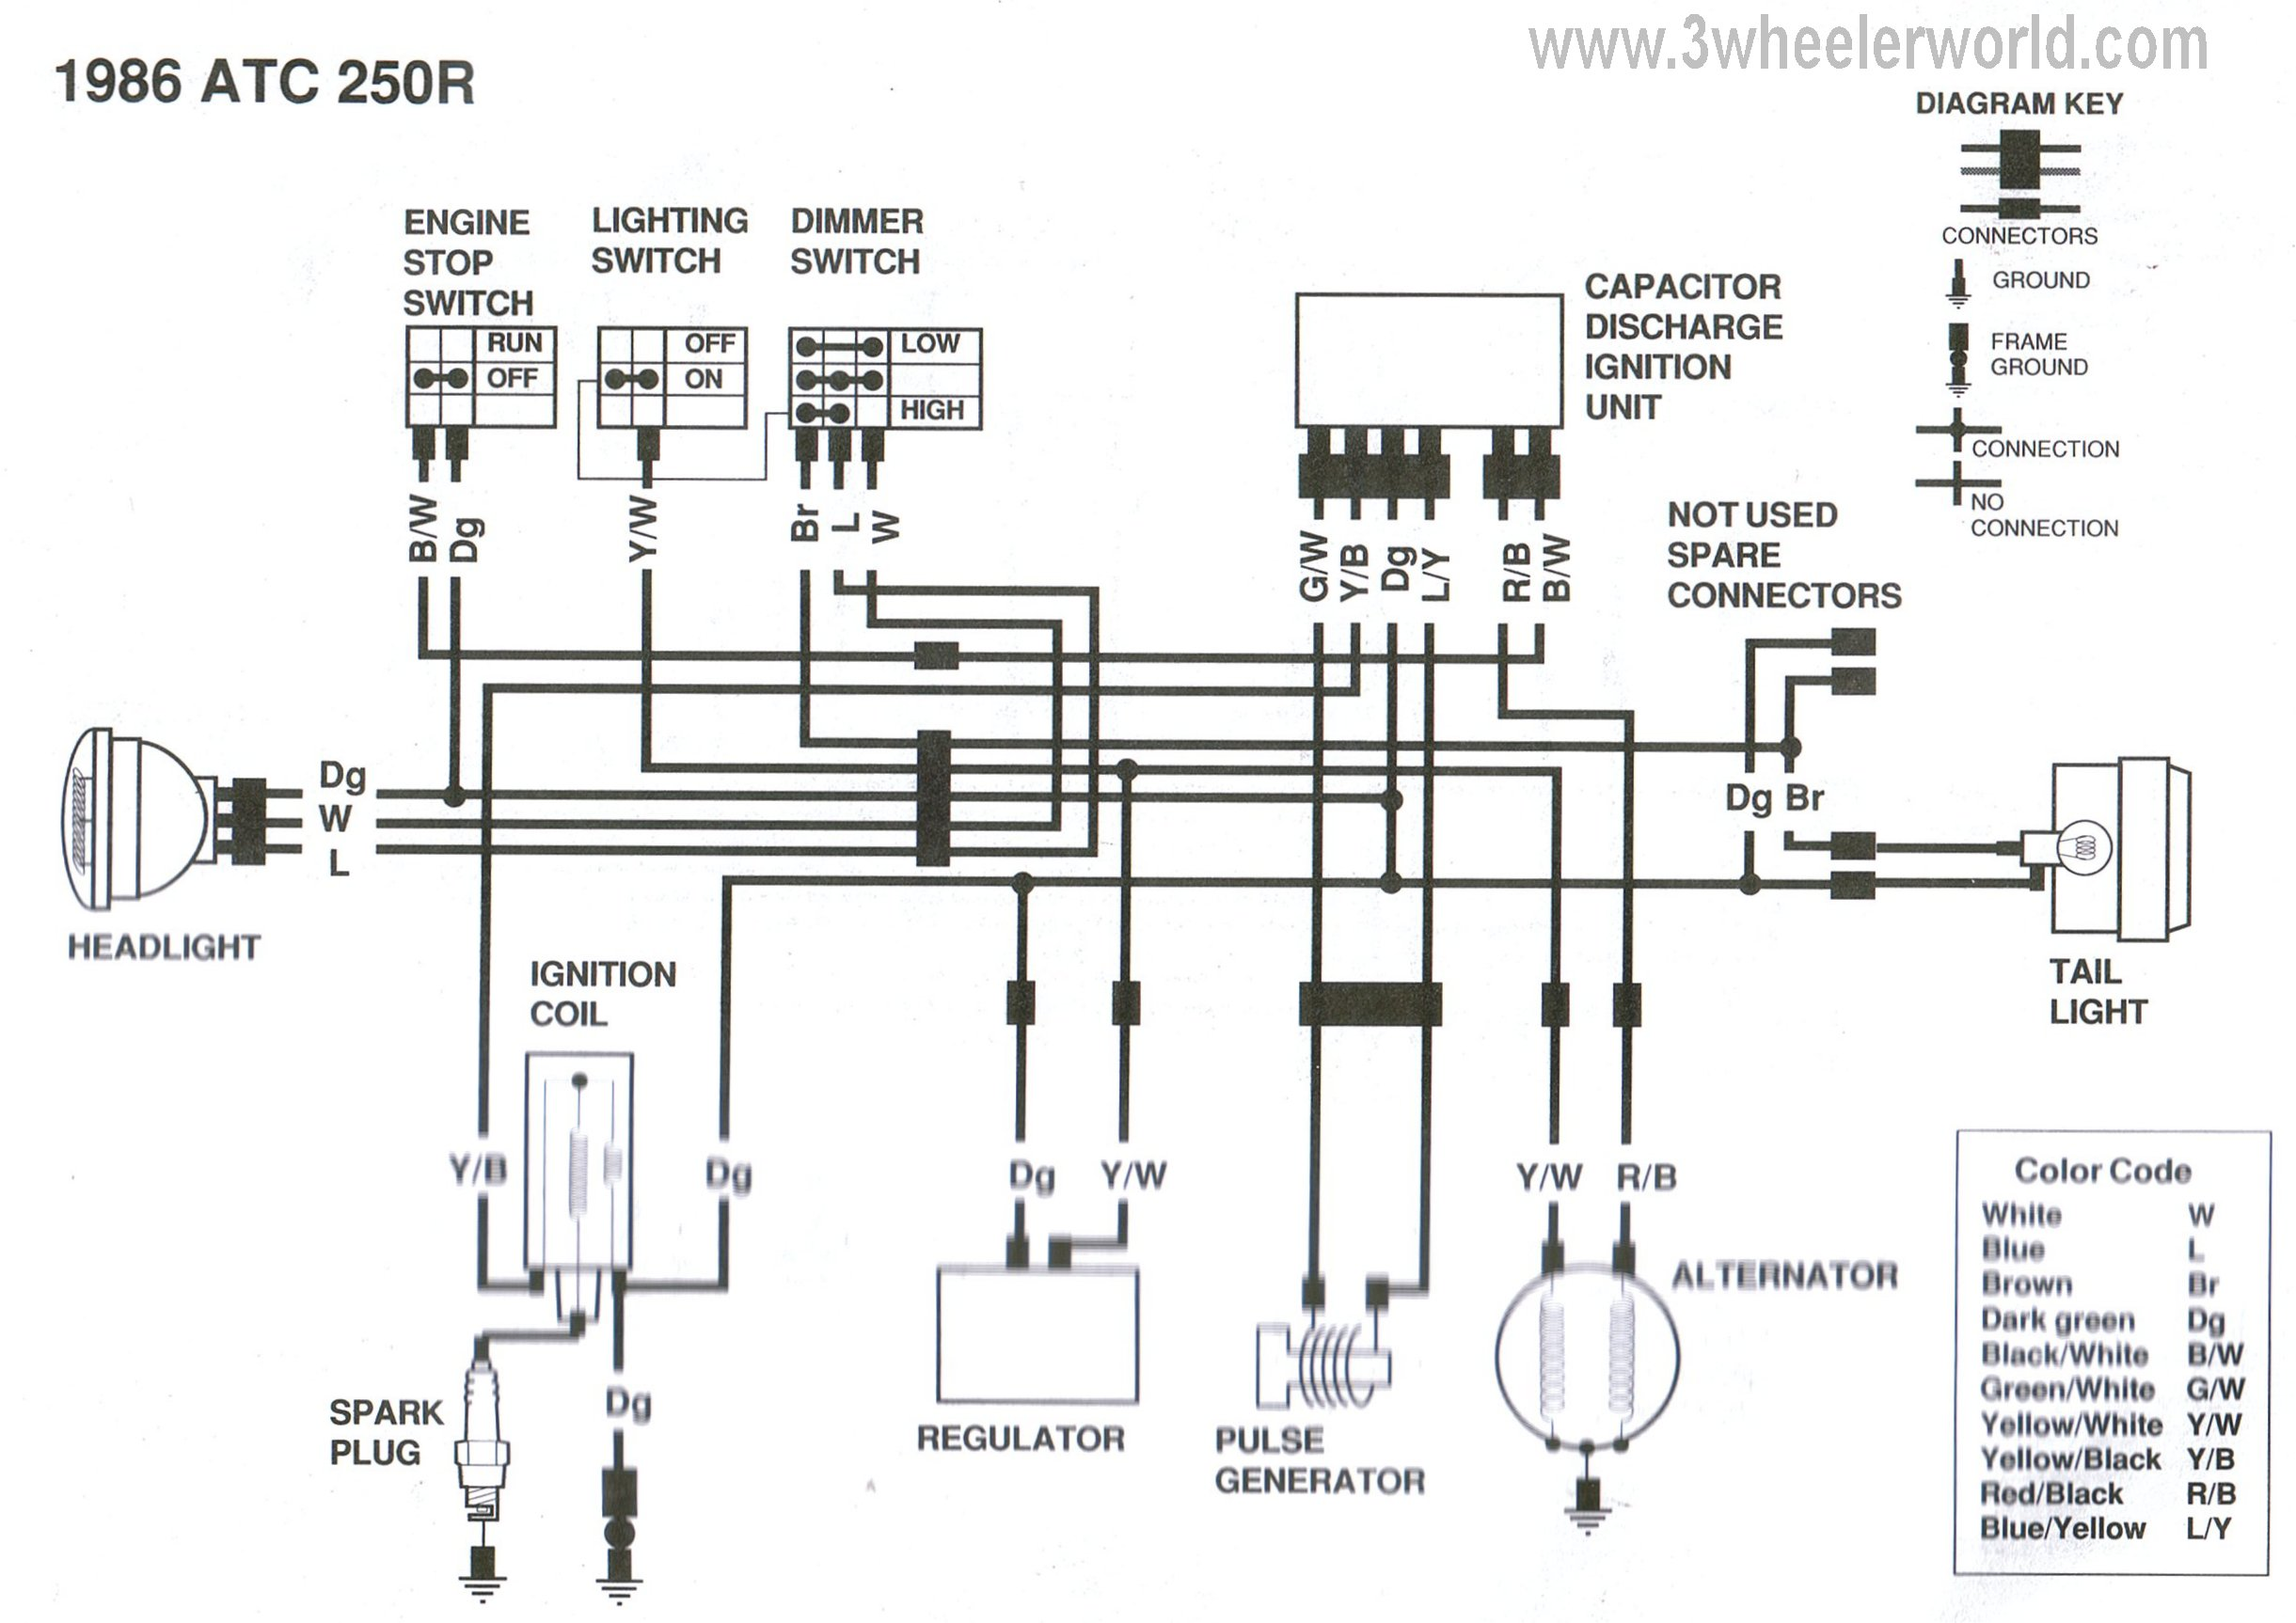 ATC250Rx86 3 wheeler world tech help honda wiring diagrams wiring diagram 1985 honda 250 fourtrax at bakdesigns.co